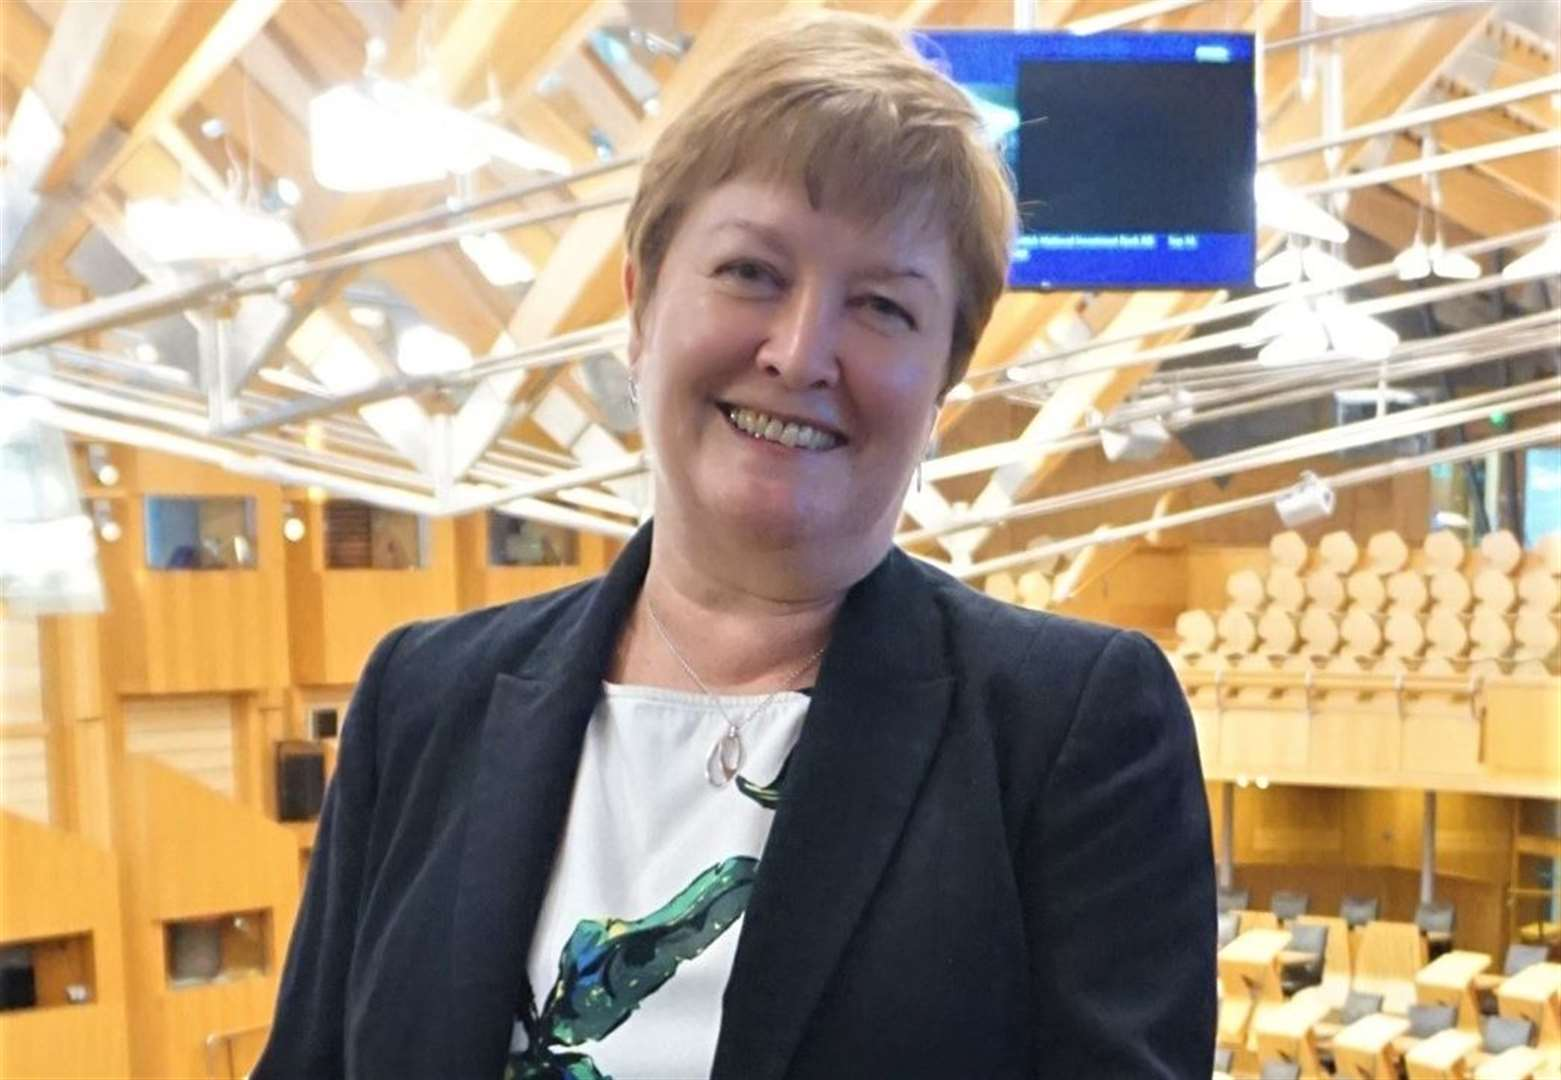 Lack of clarity for many staff over 'non-essential' work, says MSP